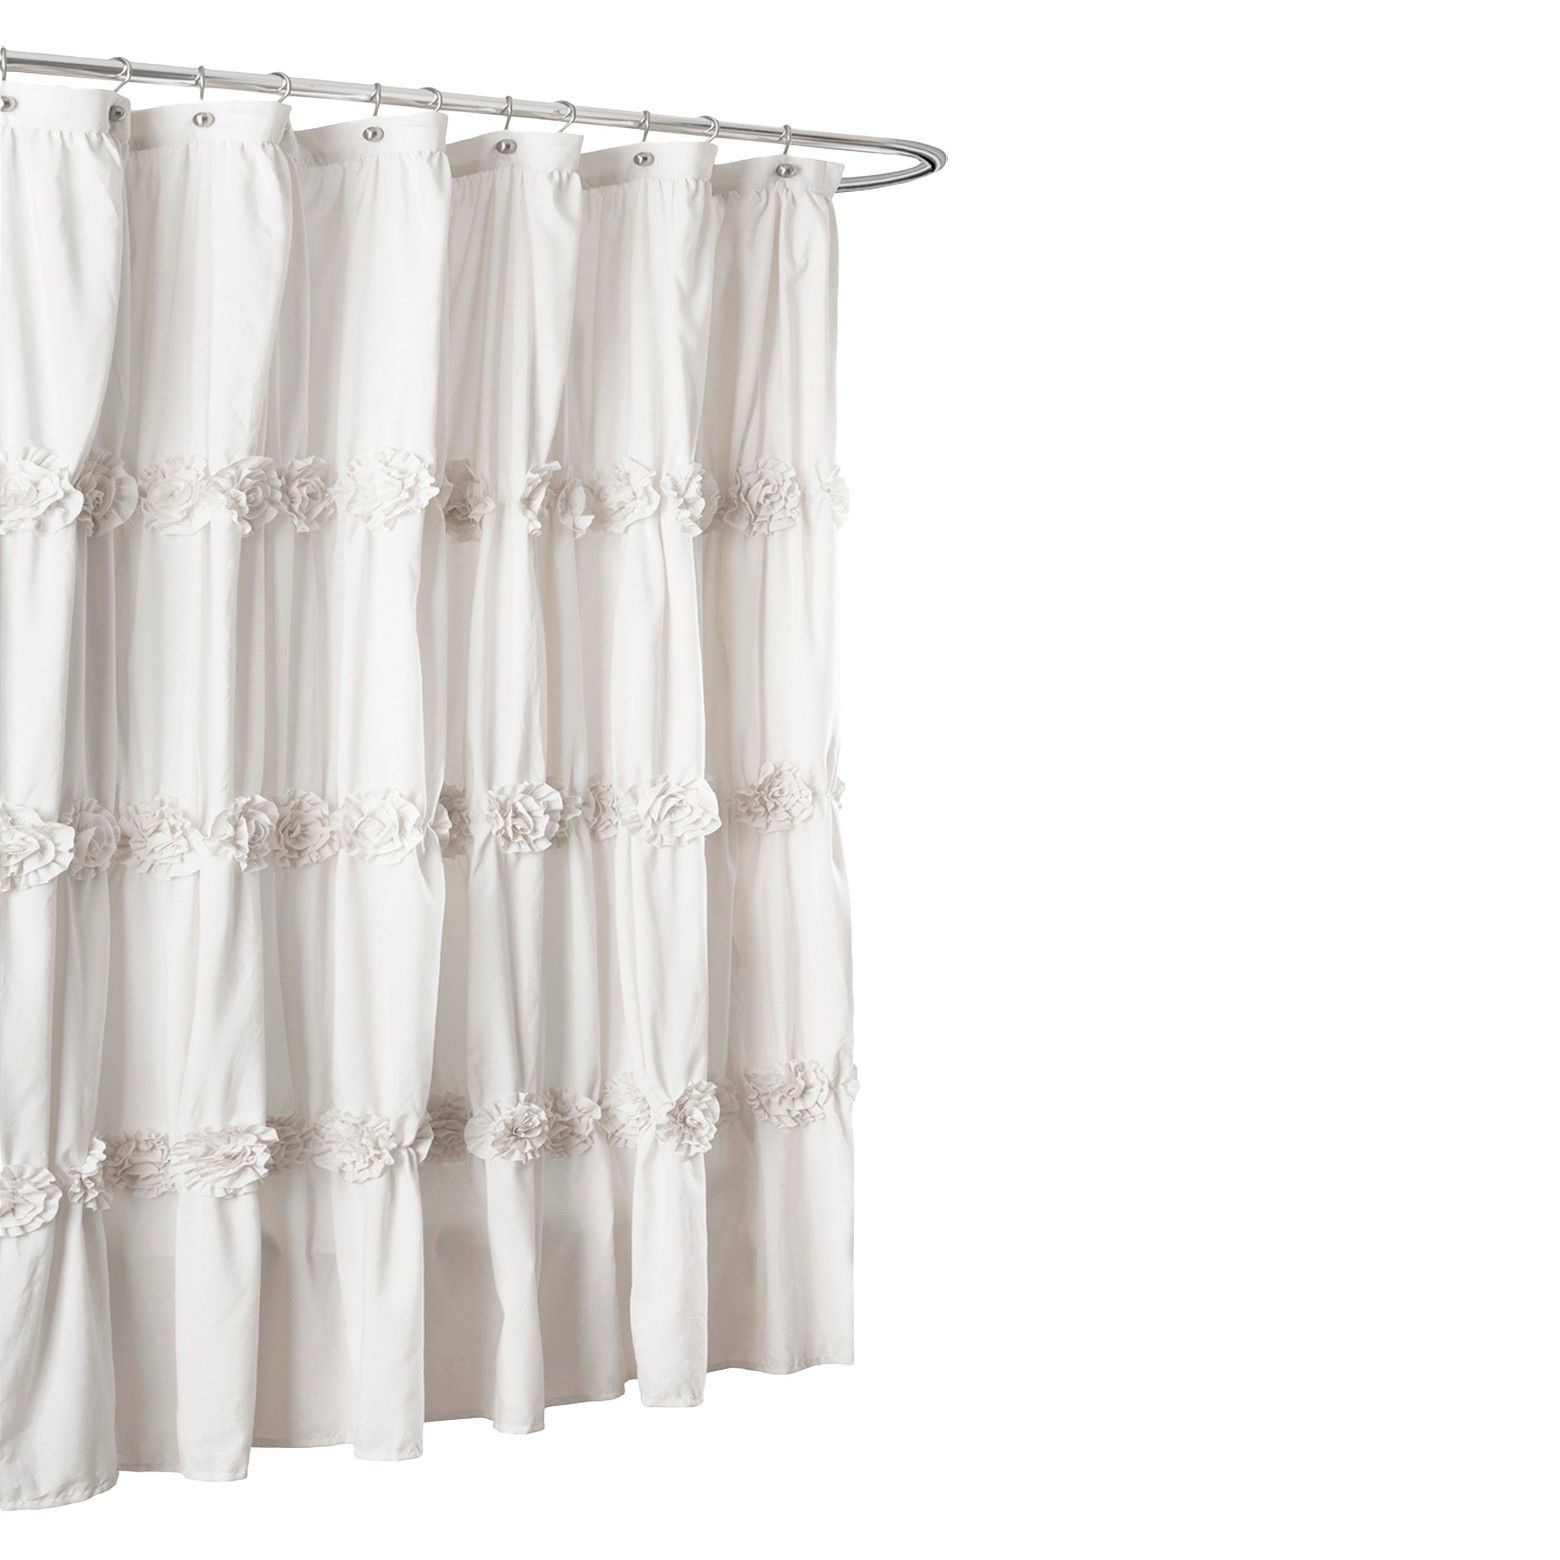 Bring Graceful Style To Your Bathroom With The Lush Du0026eacute;cor Darla  Horizontal Texture Shower Curtain. Made Of Polyester, This Fabric Shower  Curtain Has ...